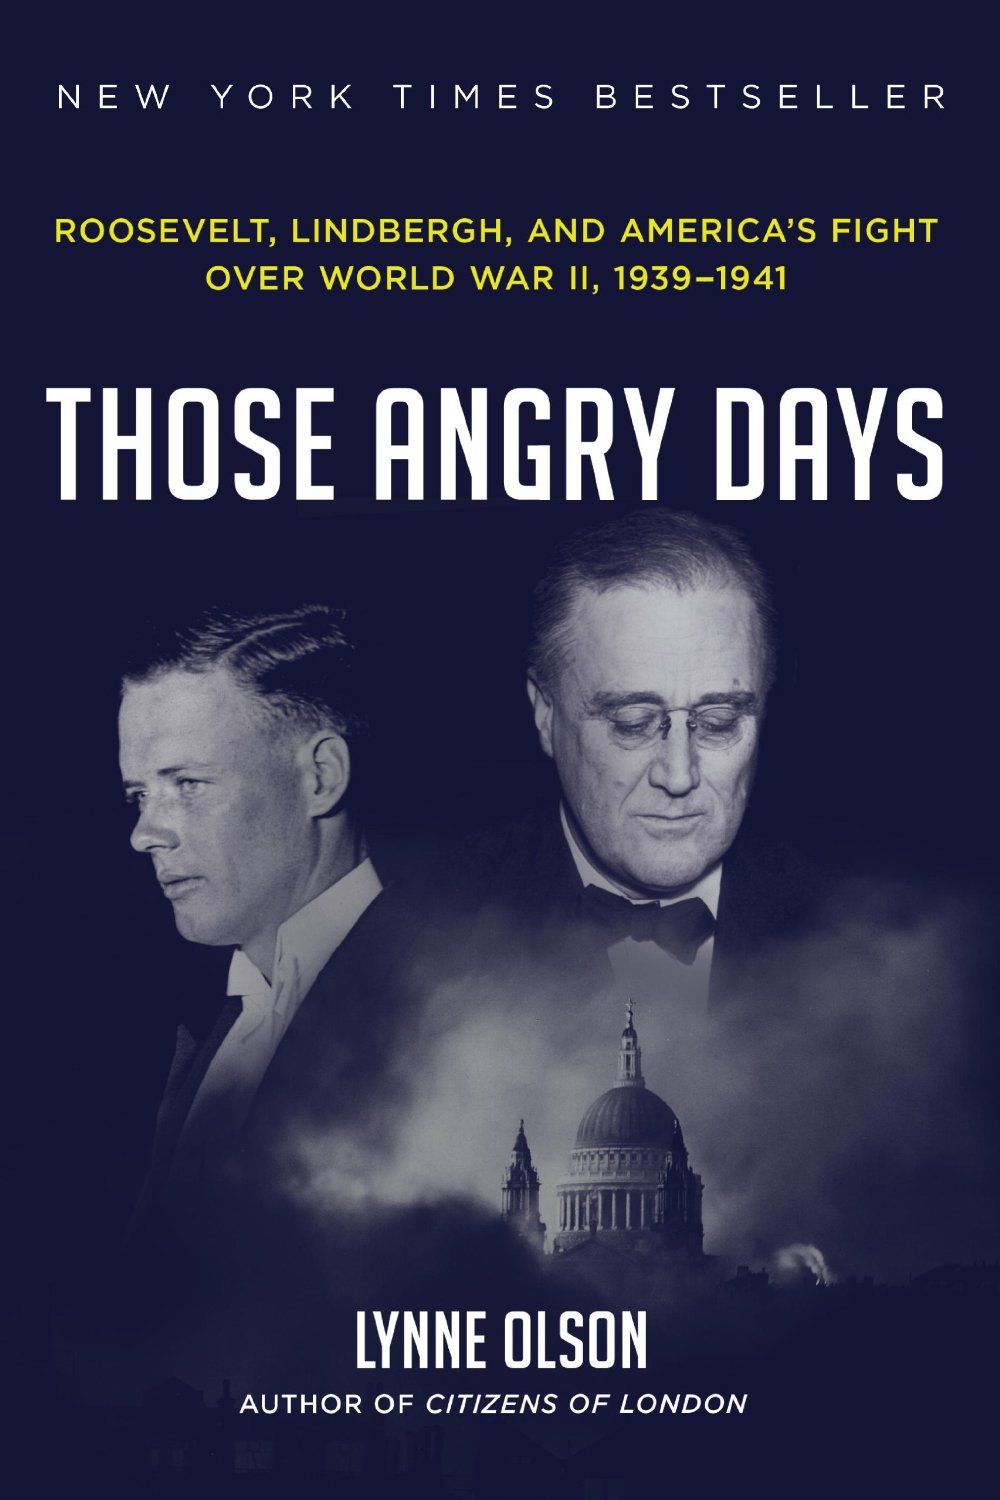 Those Angry Days: Roosevelt, Lindbergh, and America's Fight Over World War II, 1939-1941  by Lynne Olson ($11.99)